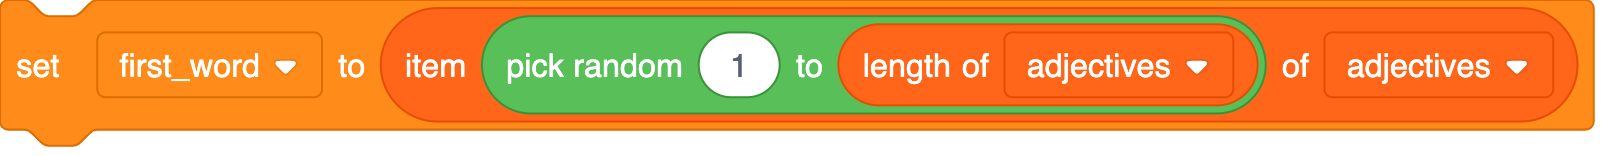 A set of nested Scratch blocks. A 'length of adjectives' block sits inside the second gap of a 'pick random 1 to' block. The 'pick random' block is inside the first gap of an 'item of adjectives' block. This 'item' block is used within a 'set first_word to' block.